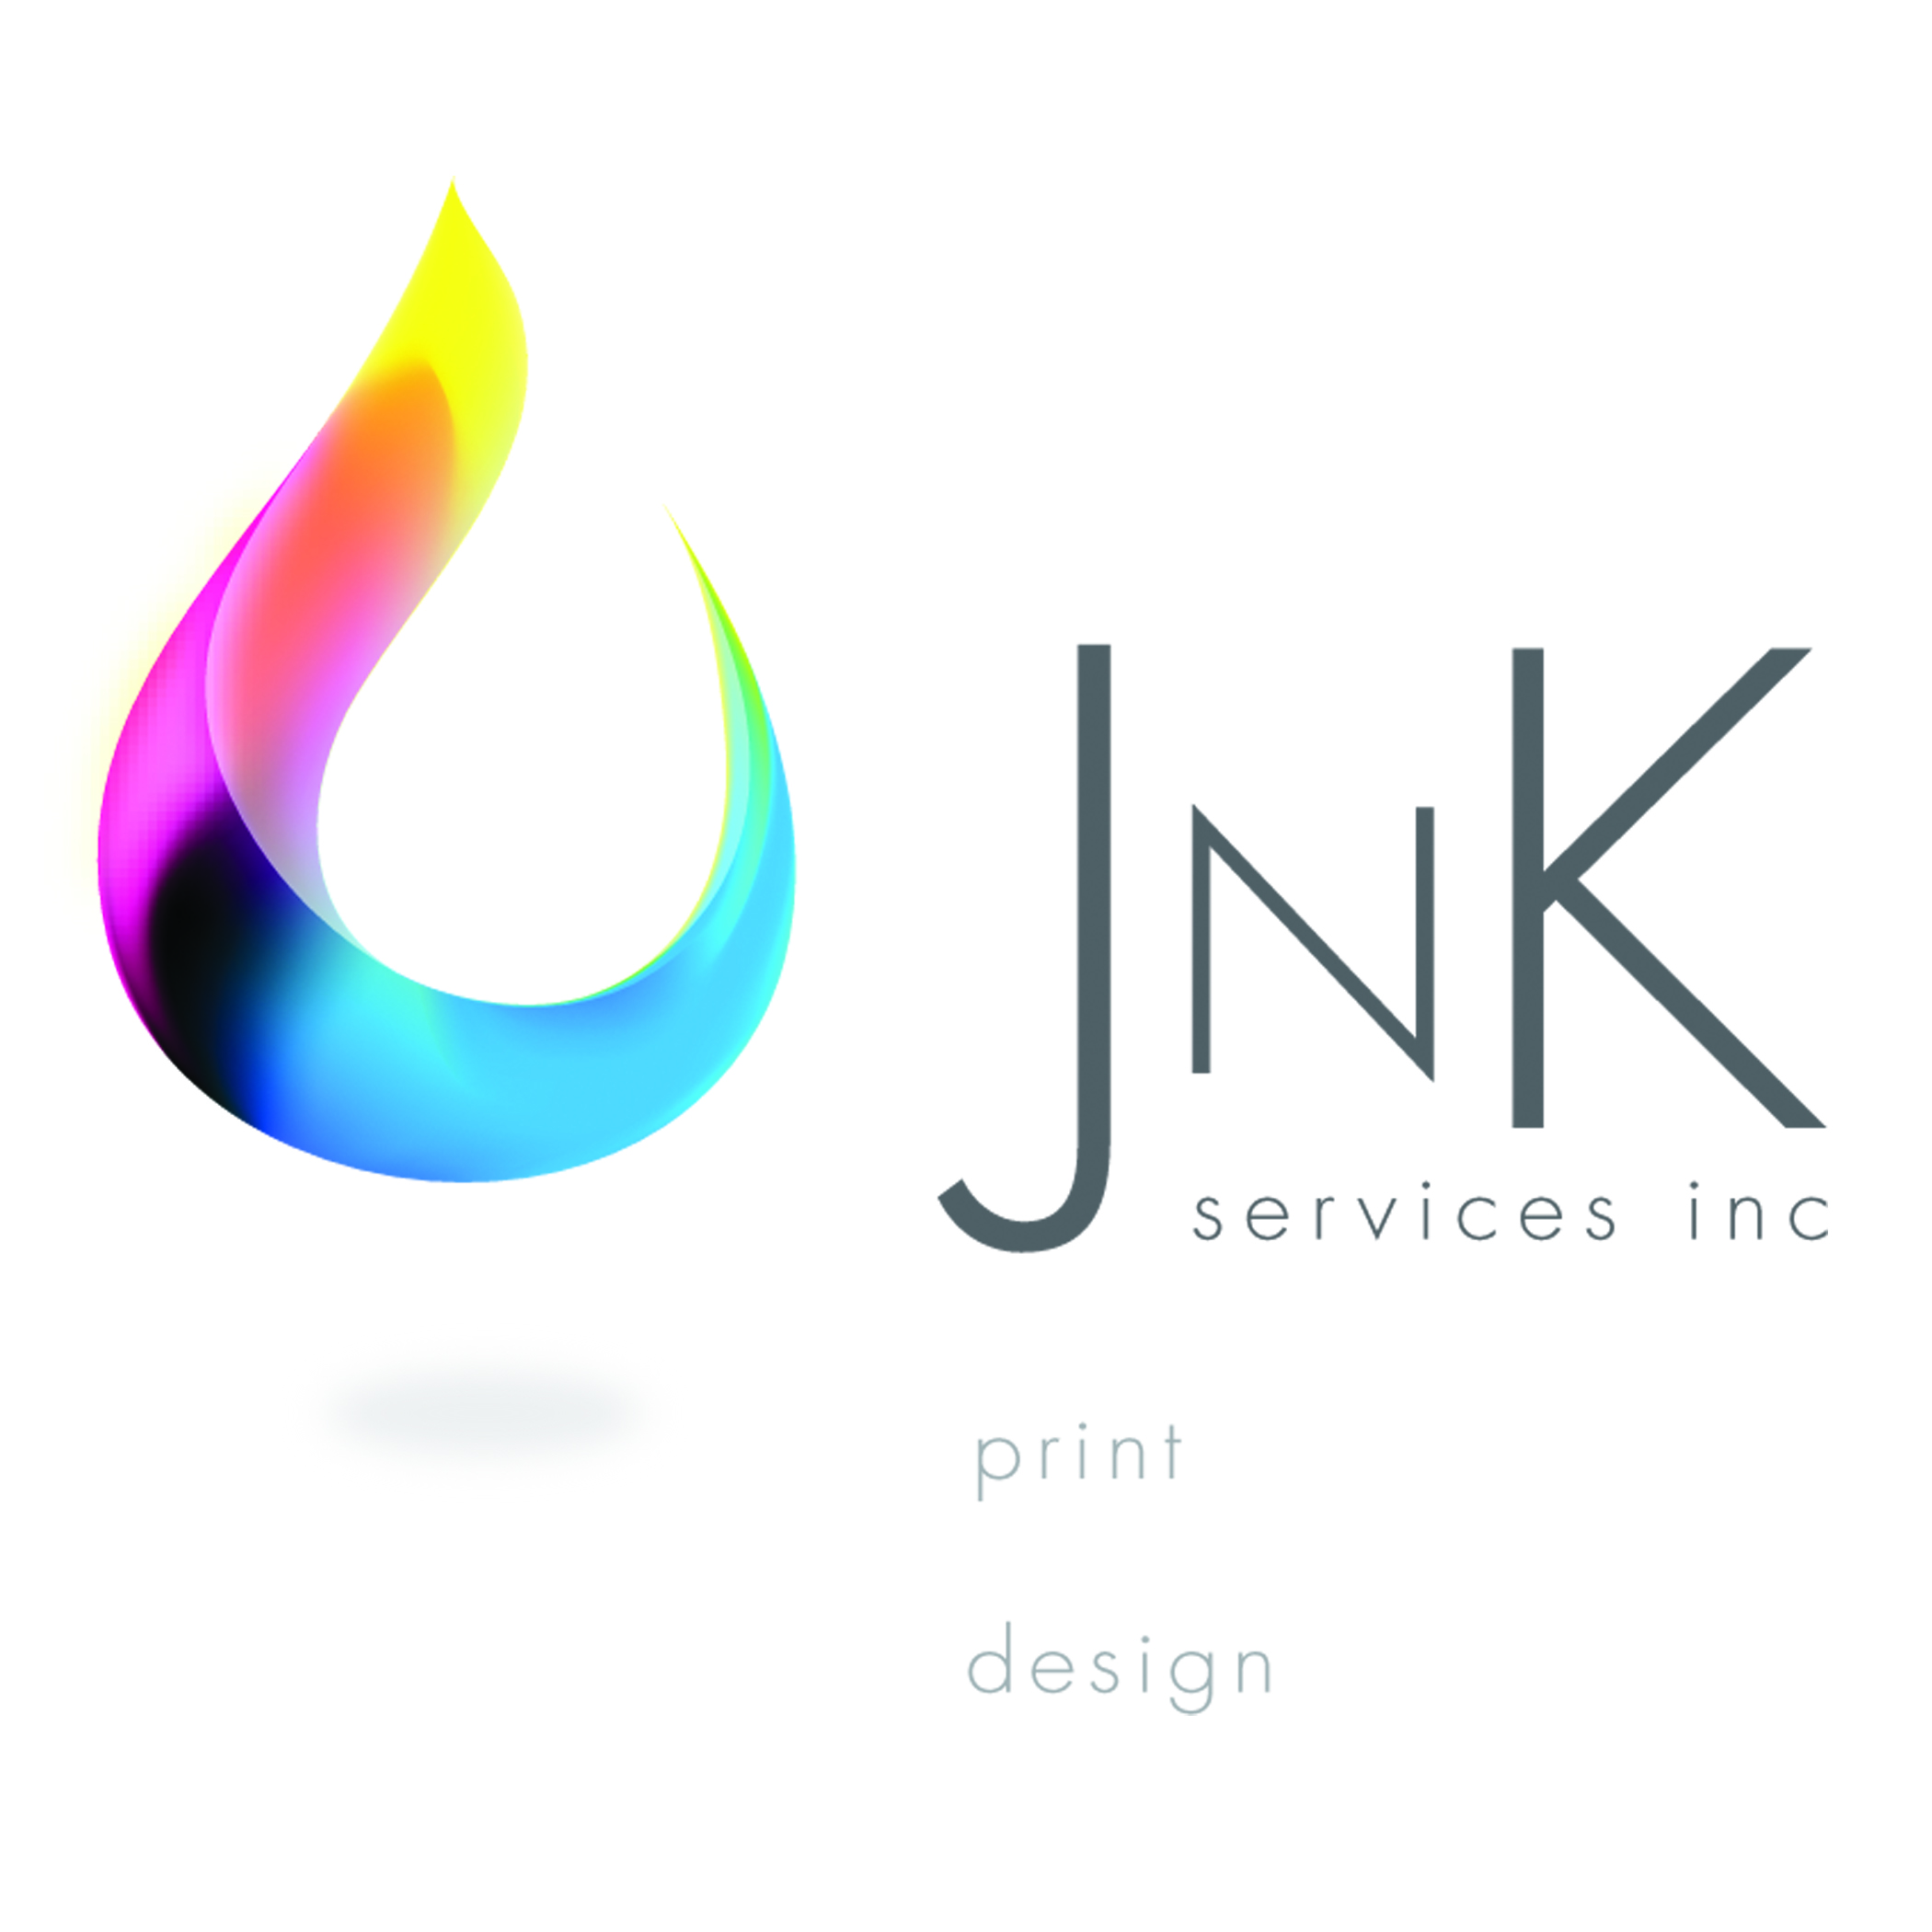 Web Design Company Name Ideas curtain business name ideas web design company name ideas web Branding And Rebranding Jnk Services Branding And Rebranding Jnk Services Graphic Design Names Ideas Web Design